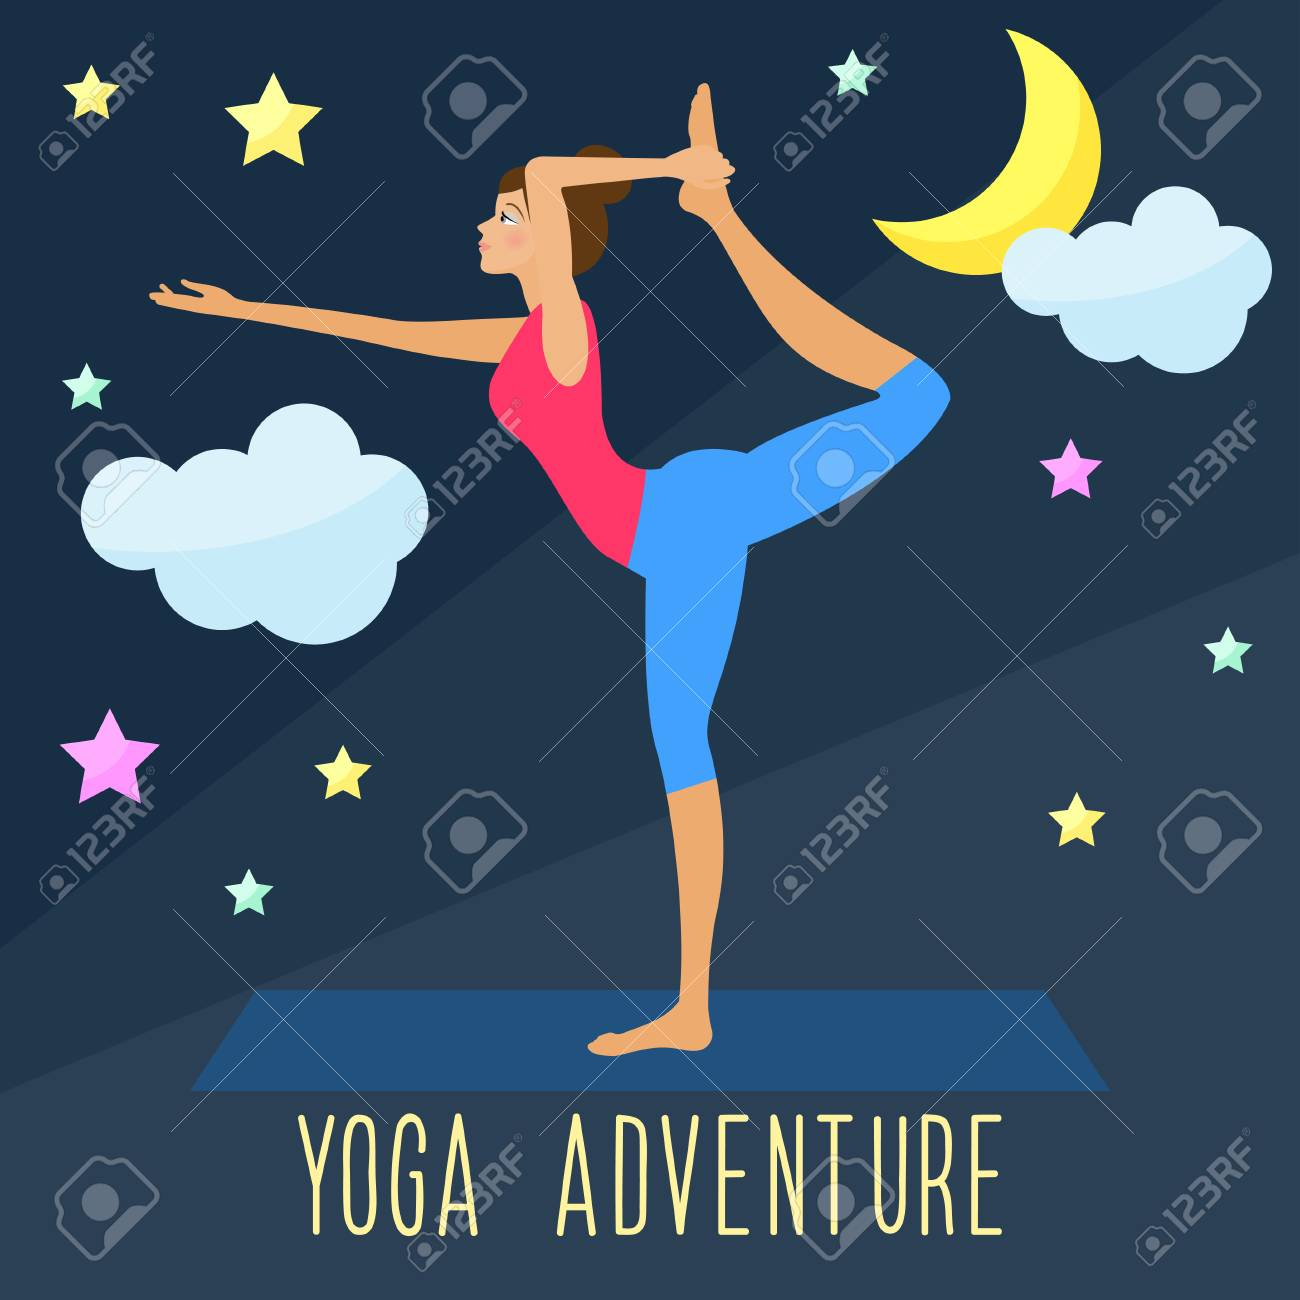 Yoga Adventure Theme Trendy Flat Style Template For Use In